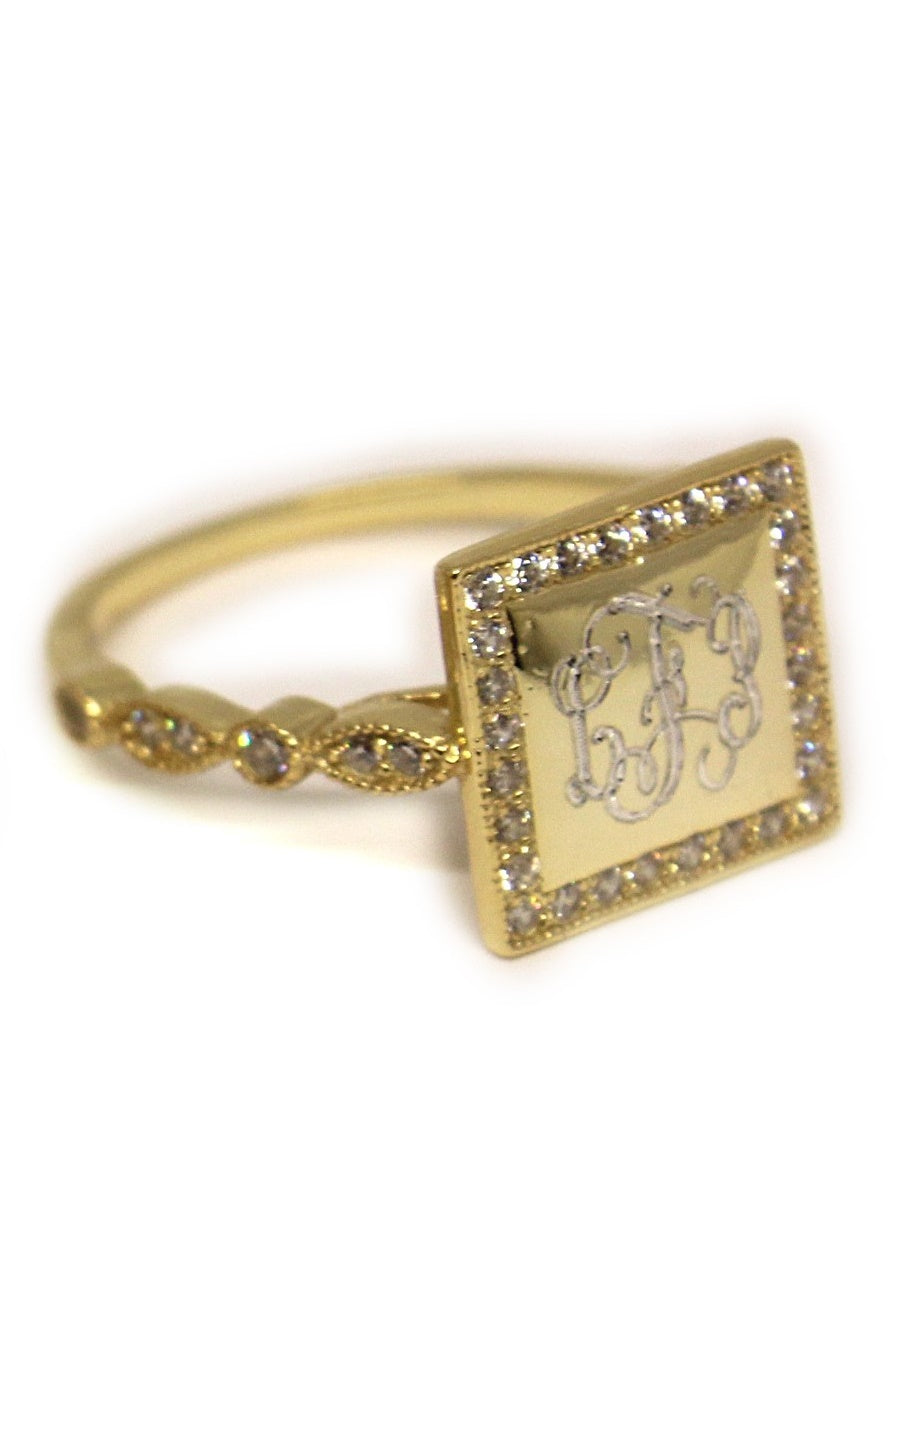 Gold Engraveable Square Ring - Plain or Monogram Engraved